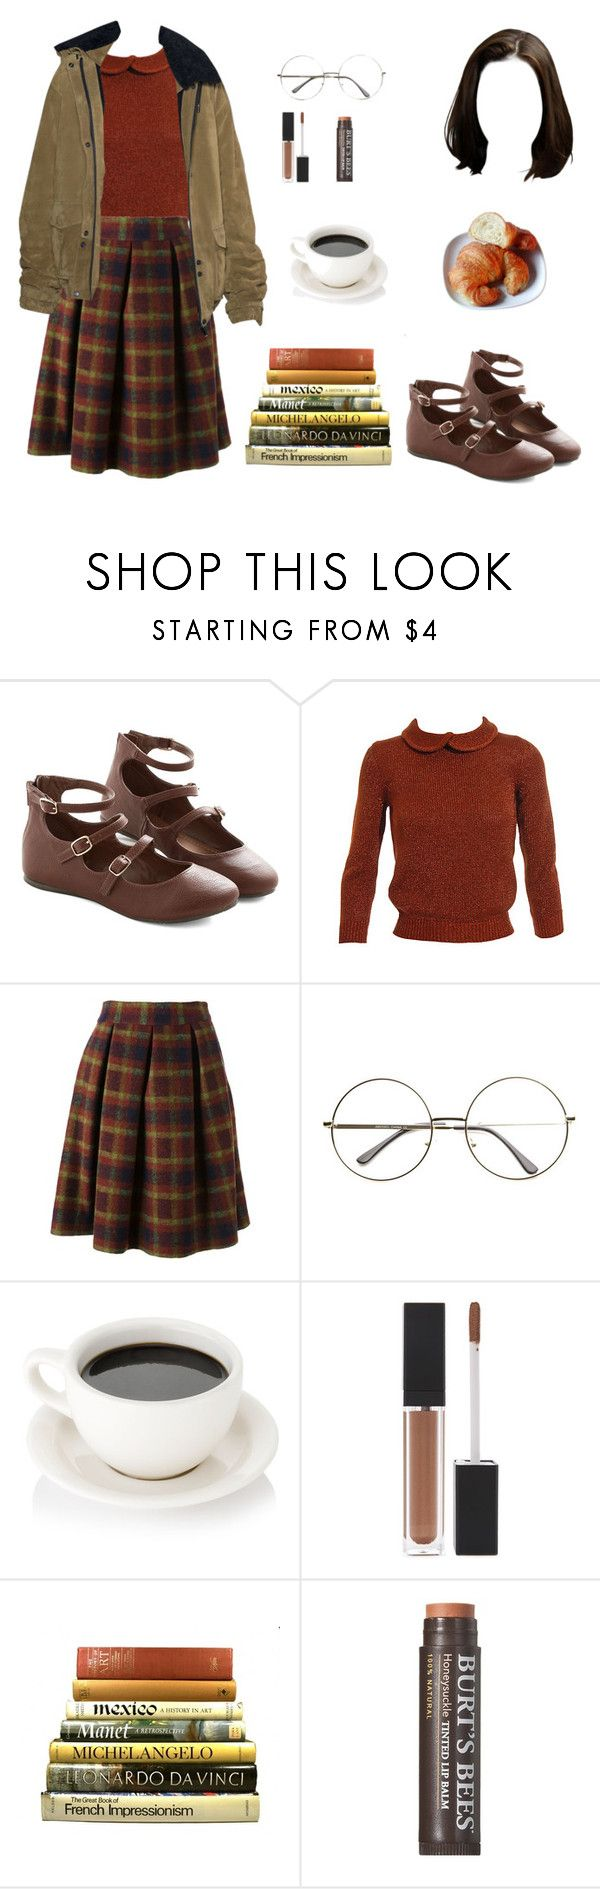 """""""DEBBIE"""" by twyzter ❤ liked on Polyvore featuring Jeffrey Campbell, Jil Sander, Stella Jean, Forever 21, Table Art and Burt's Bees"""